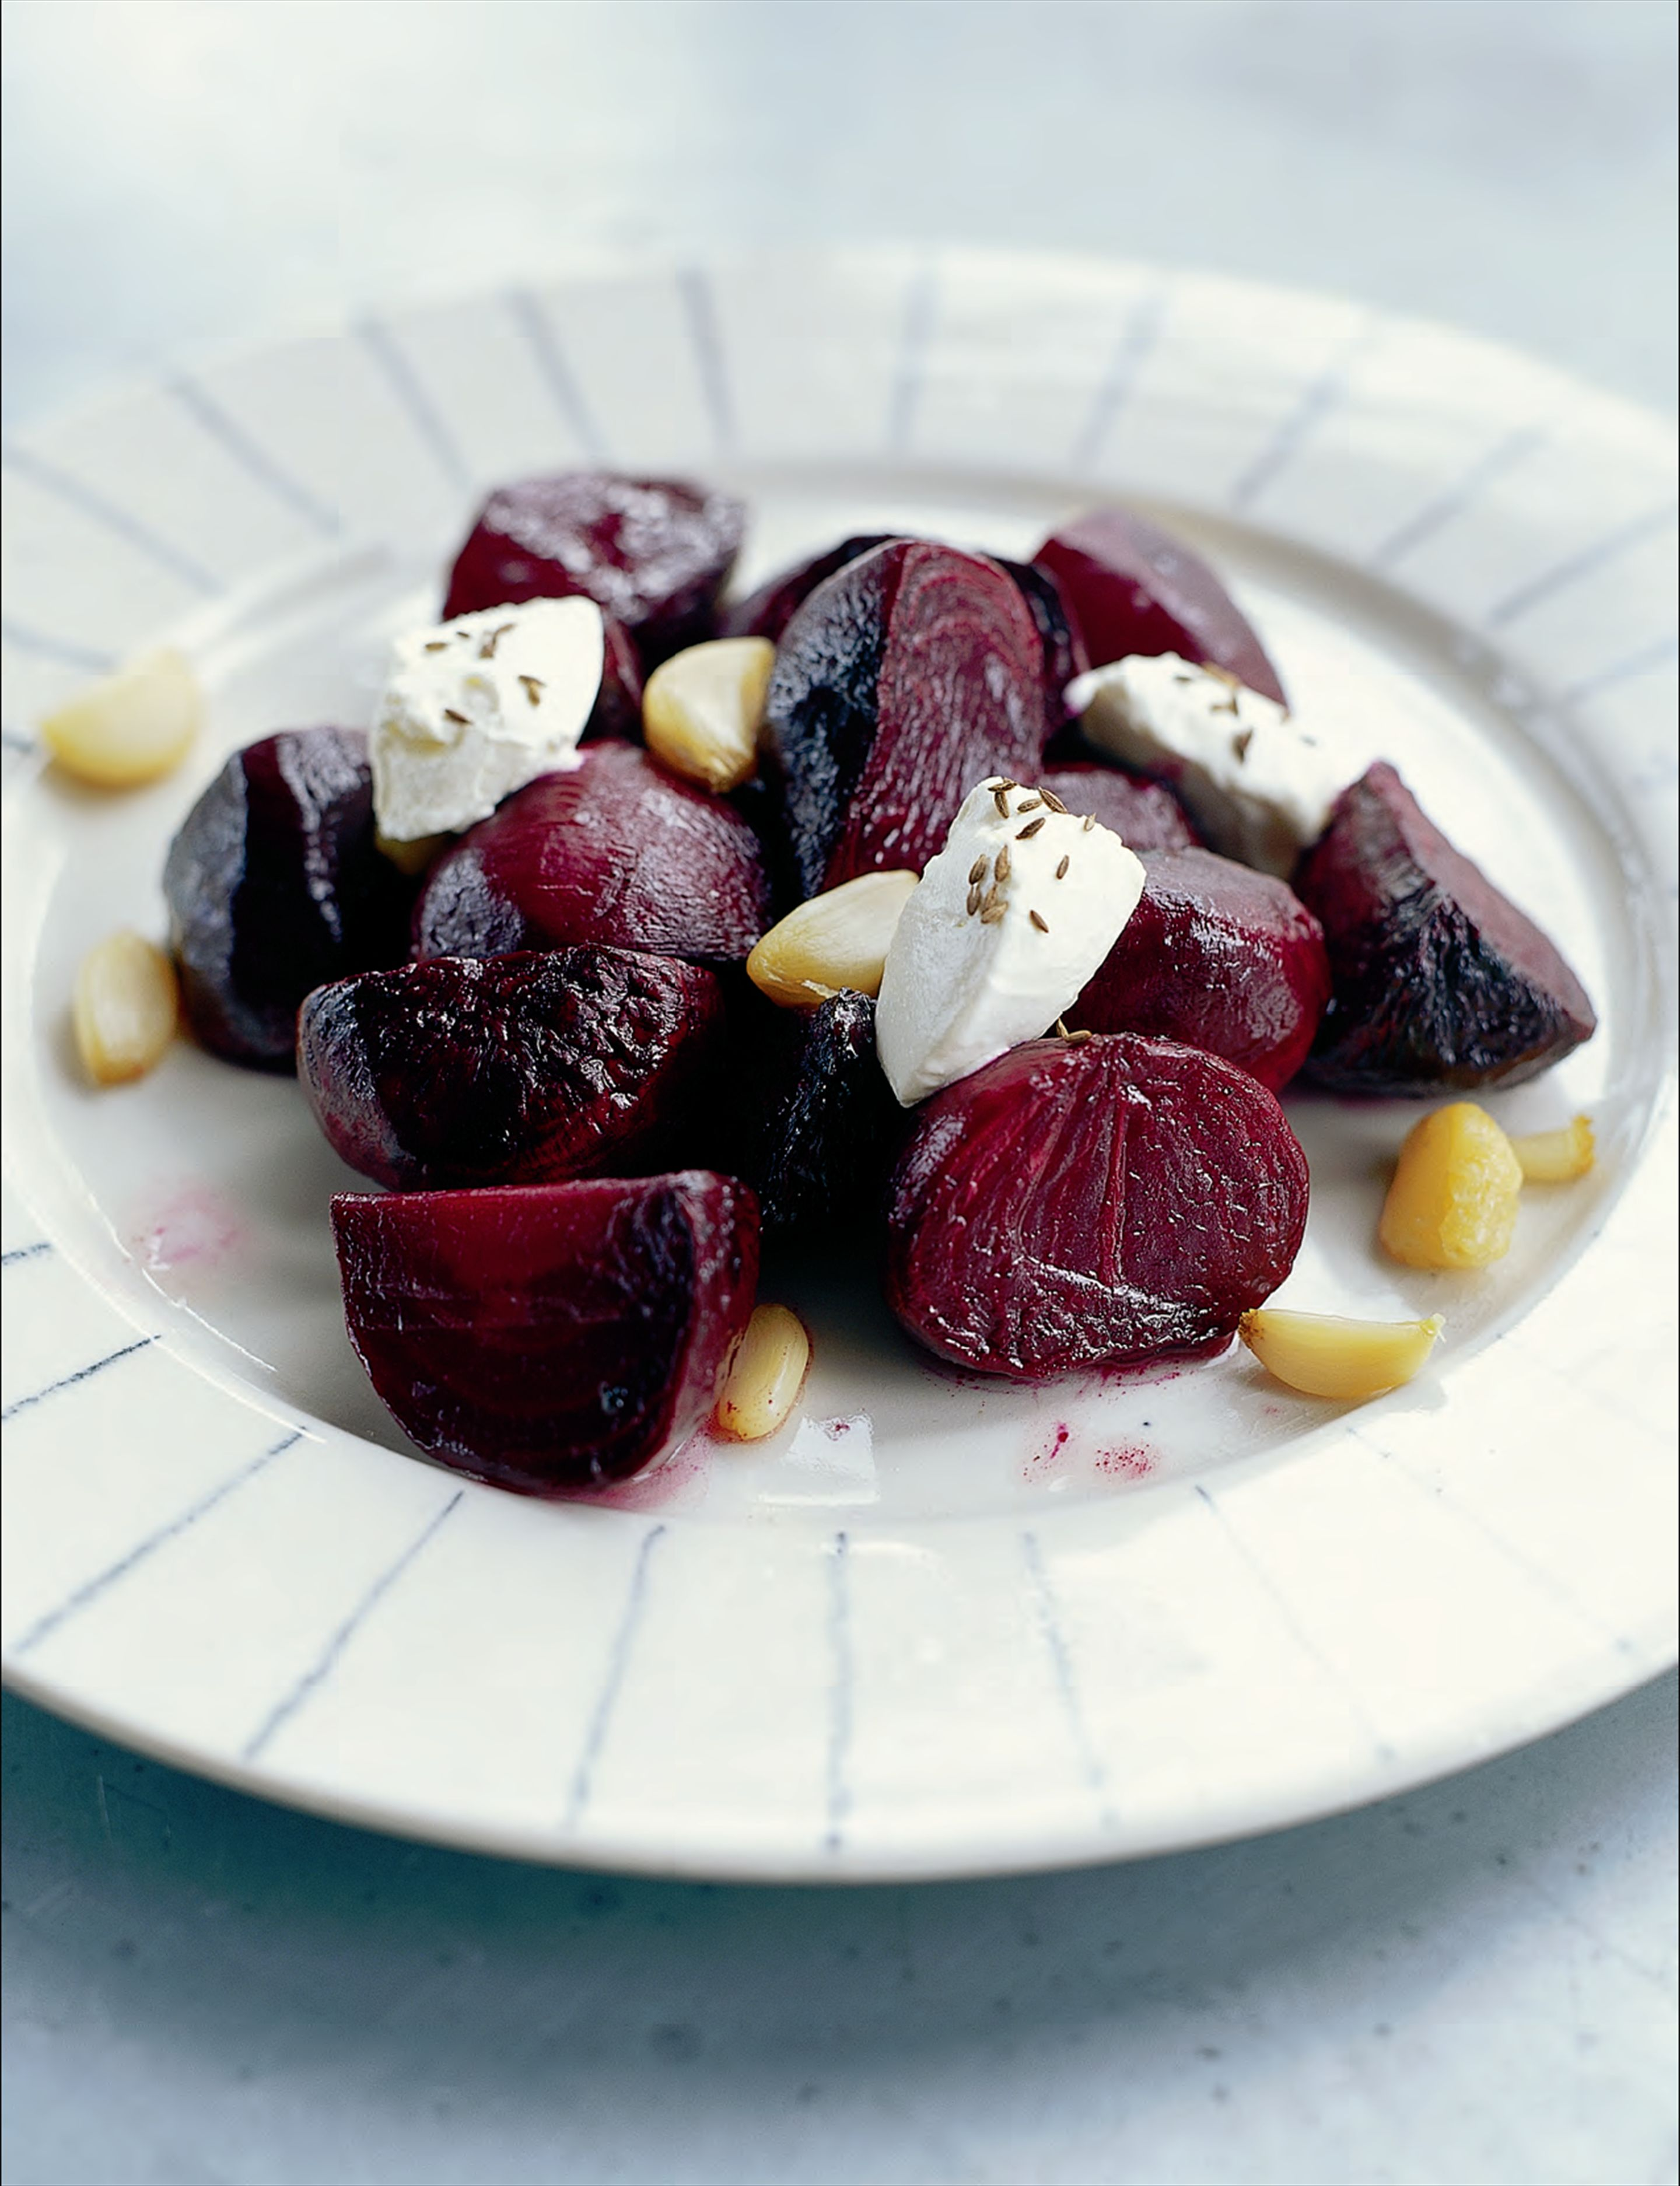 Roasted beetroot salad with garlic and labne